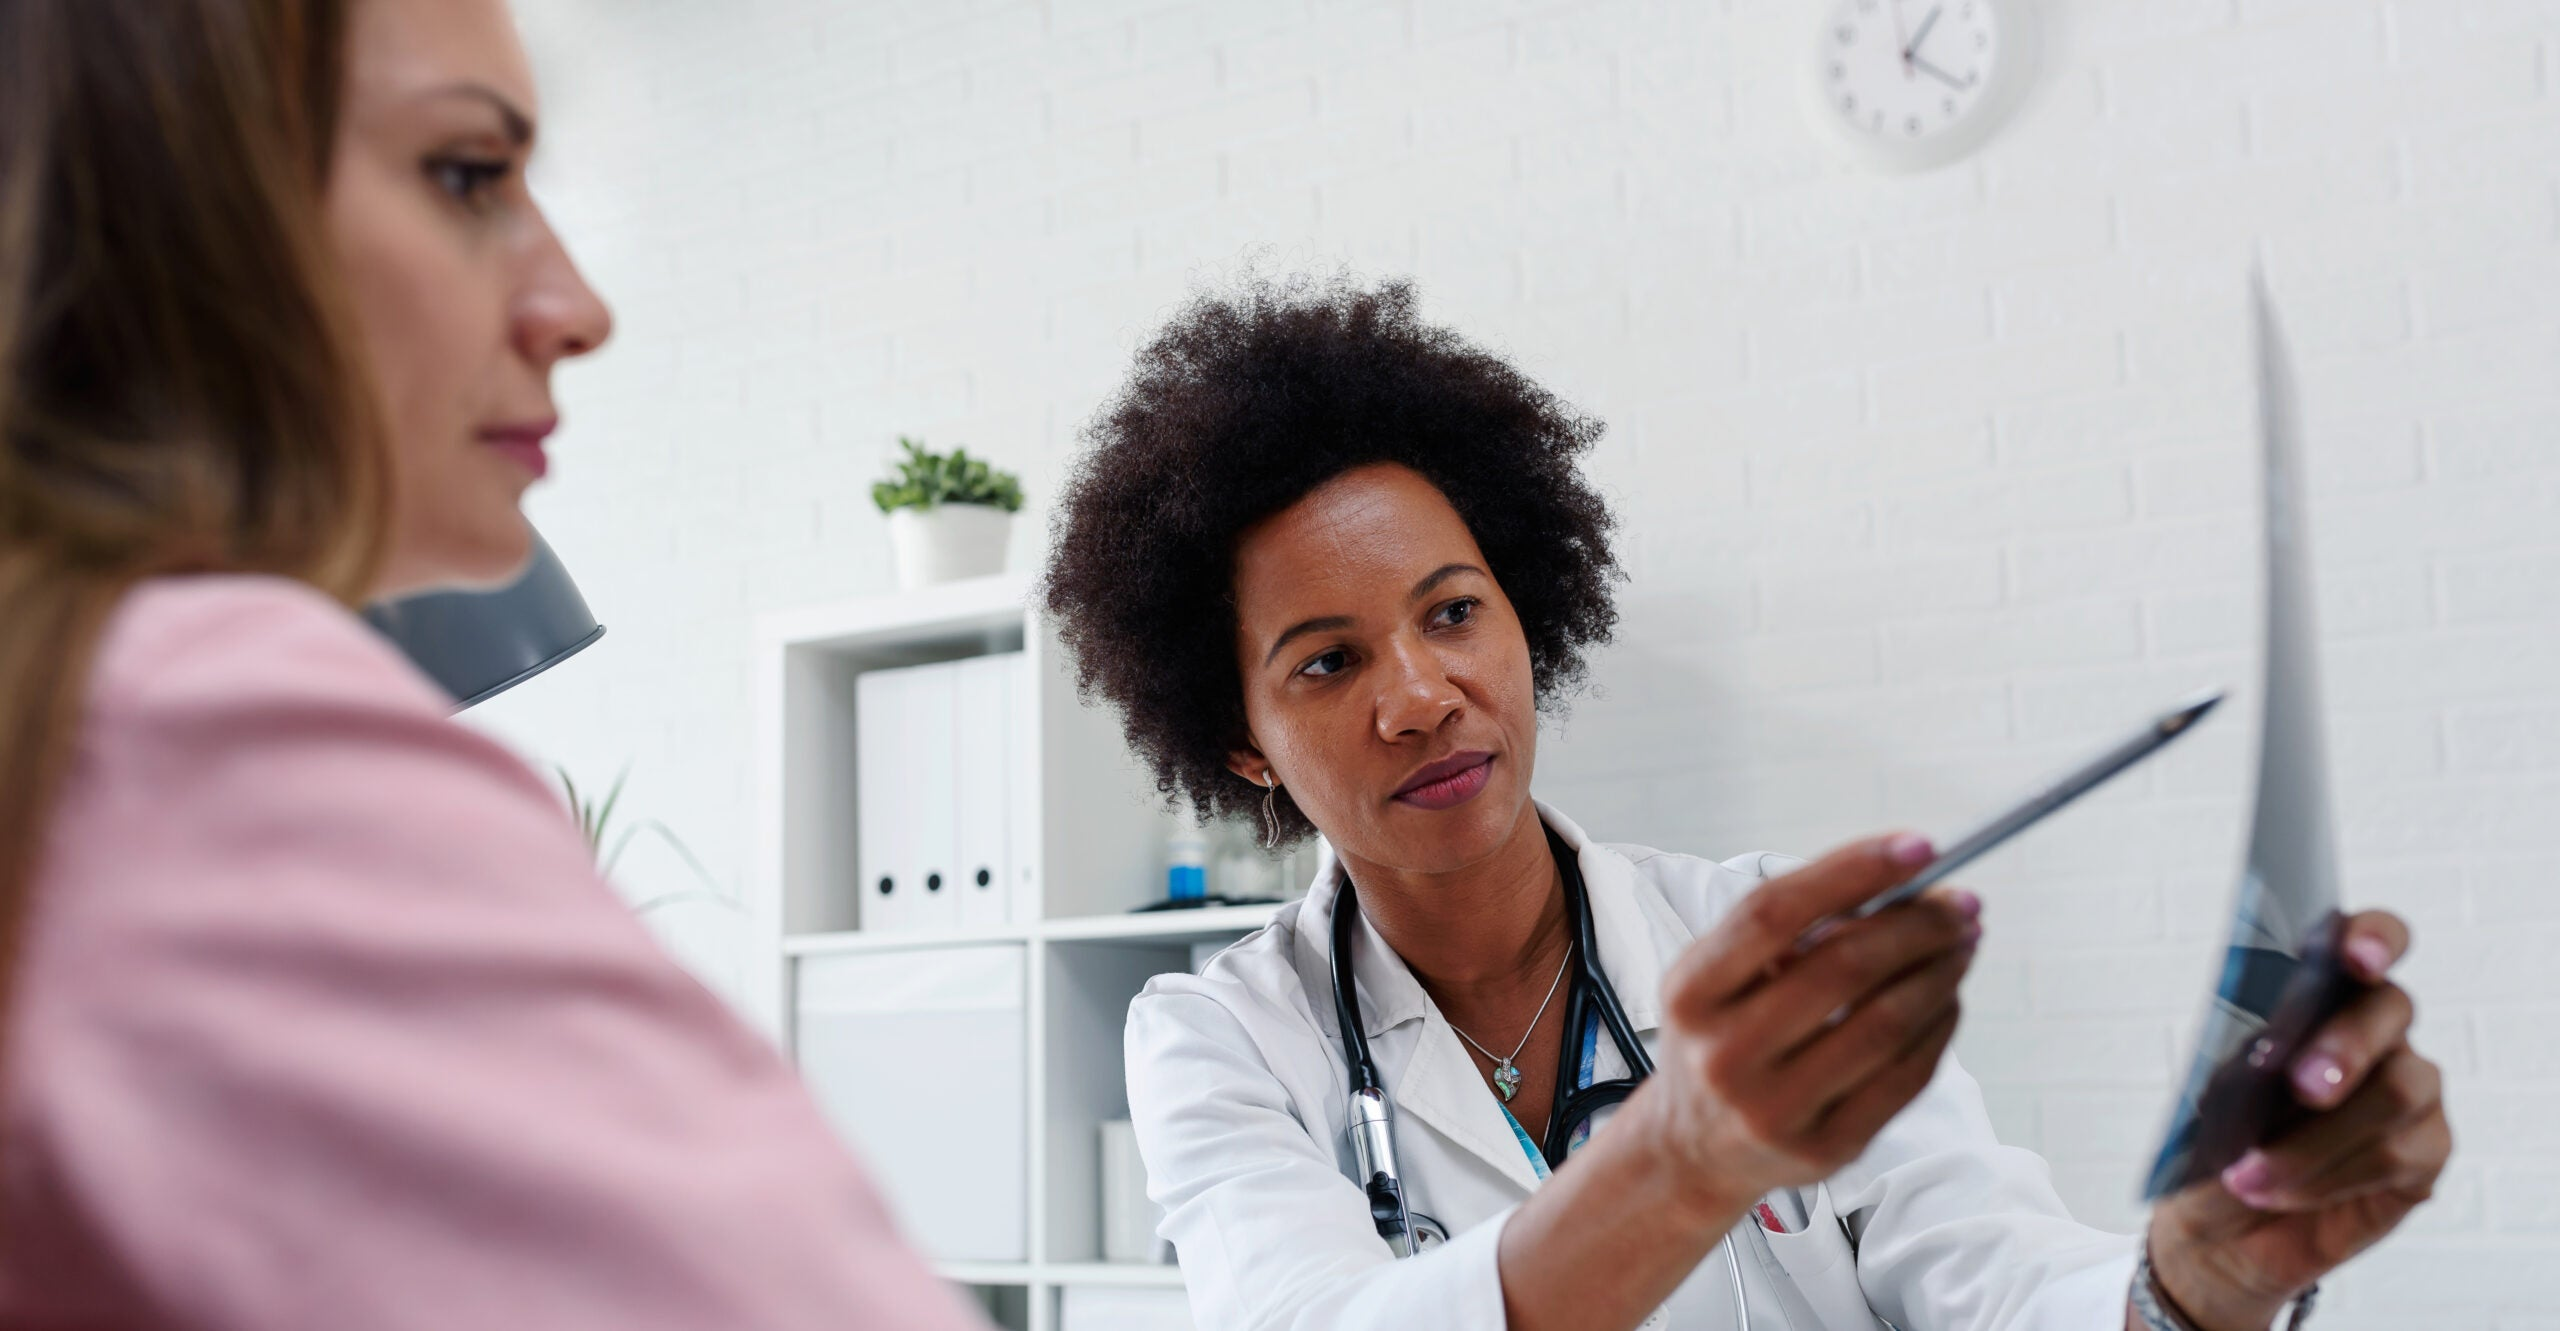 Tested by COVID-19, Doctors� Direct Primary Care Model Proved Its Mettle